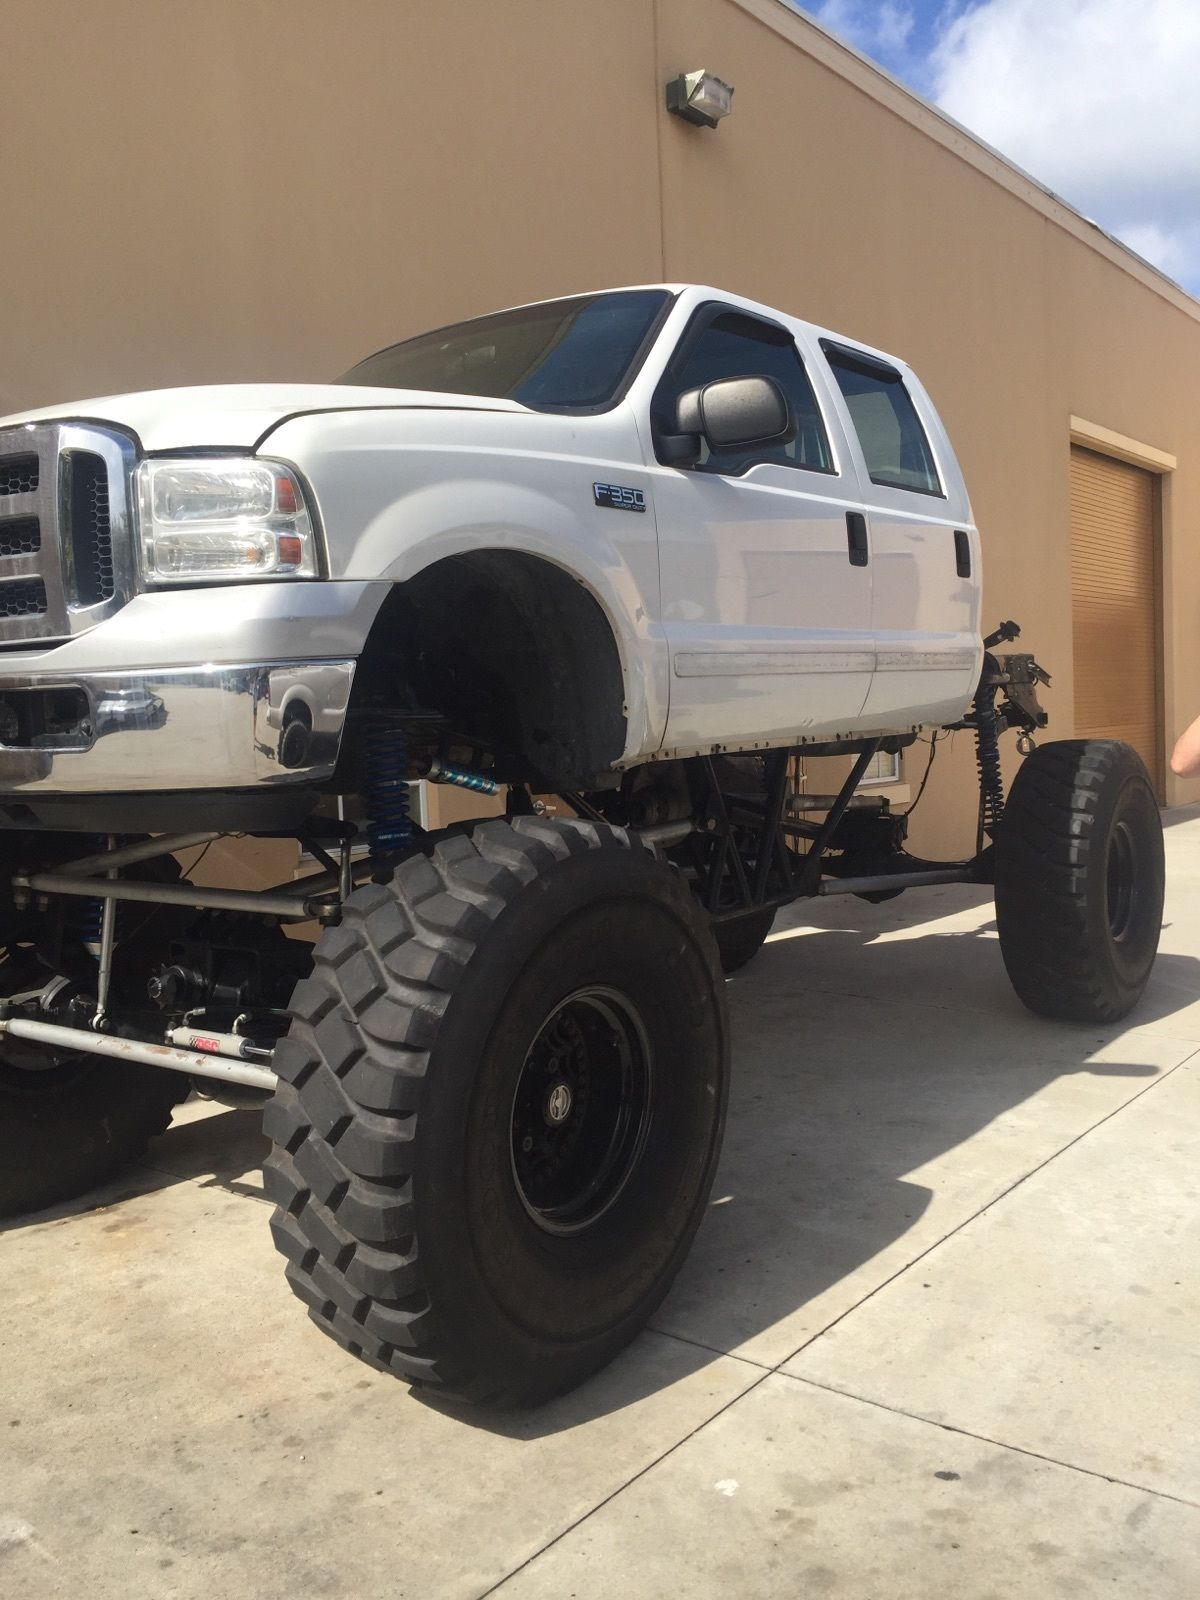 Ford F Lariat Monster Mud Truck For Sale on Custom Lifted Ford F 250